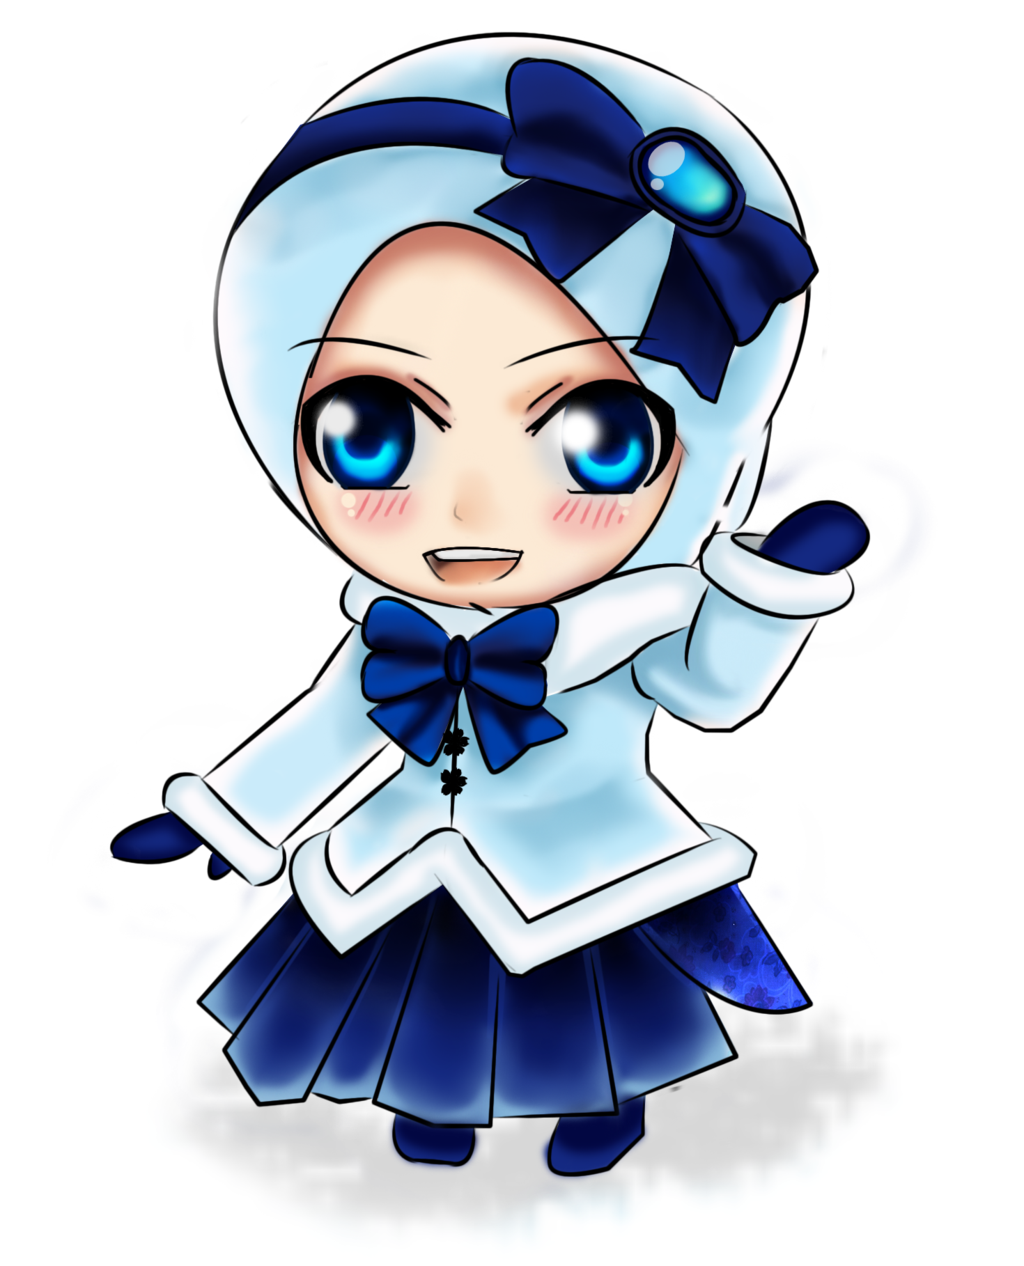 Chibi Yuki by on DeviantArt